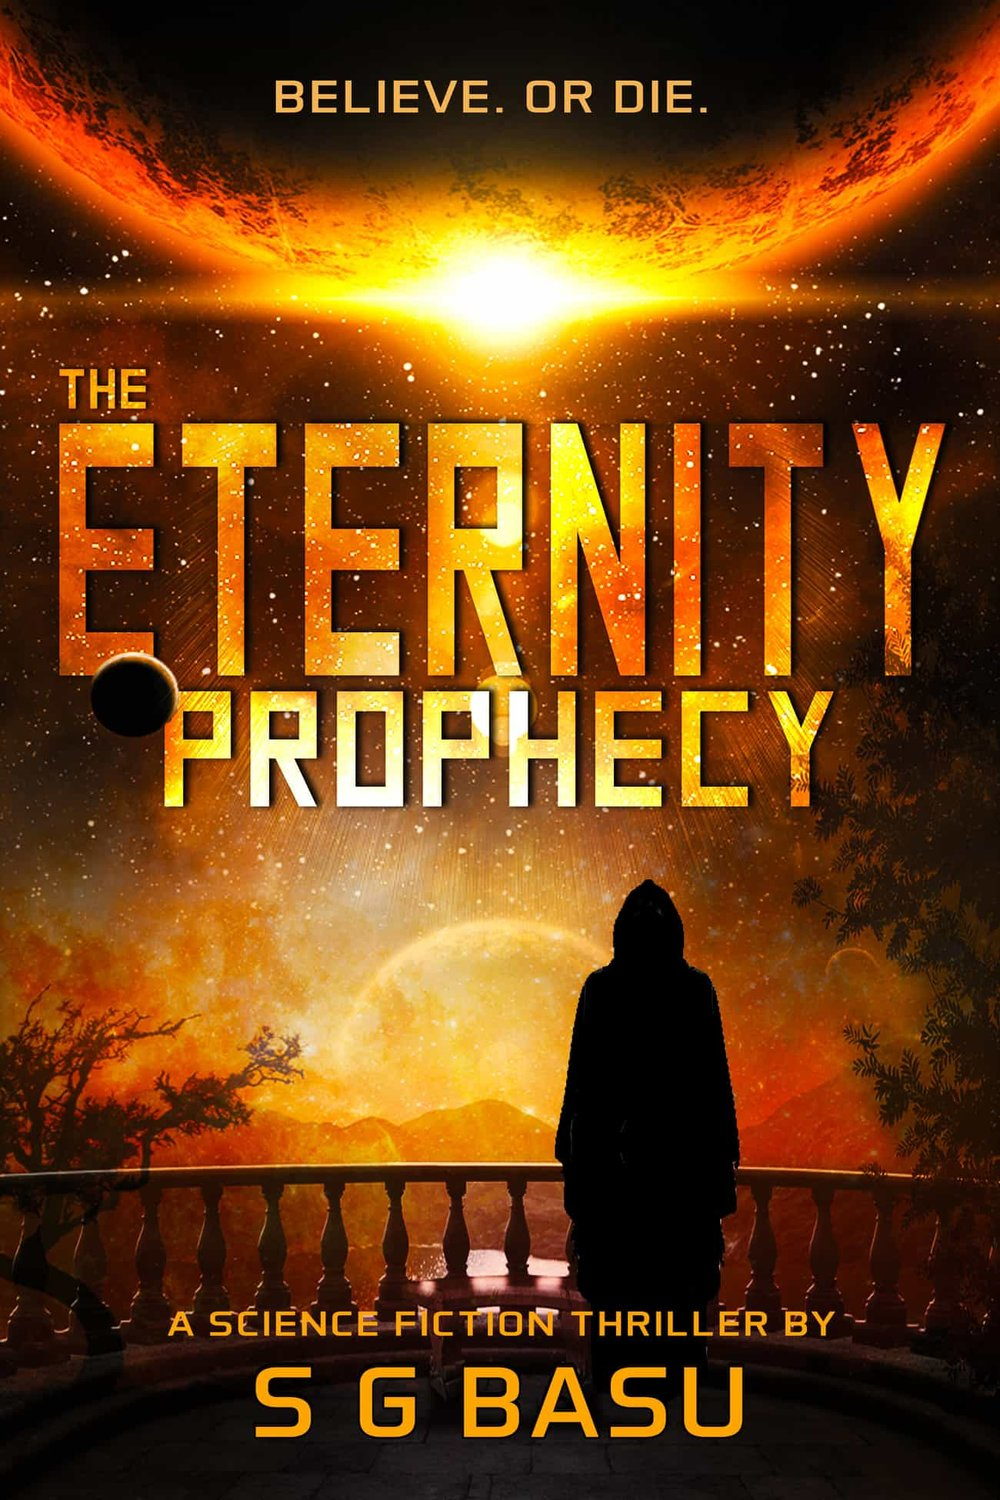 The Eternity Prophecy - In the Veloressian Empire of the twenty-three stars, prophecies are sacred and absolute. Until the day Oracle Prime Leon Courtee challenges the Empire's most sacrosanct divination--the Eternity Prophecy. The next morning he disappears, along with an inconceivable truth that could cripple the Empire. As murmurs of a conspiracy simmer underneath a facade of peace, the regime prepares to strike back. Anything to keep the dissenters quiet. Or better yet, dead. The Empire is ready to turn innocents into pawns in a game of treachery and deceit--a sacrifice deemed necessary to keep peace across the galaxy. Will truth stand a chance against the all-powerful Empire? In this unputdownable tour de force, disparate lives--a young mother fleeing a horrific past, a covert operative trying to resuscitate his career, a self-taught hacker fixated on revenge, an assassin seeking redemption--crisscross and careen unwittingly toward a stunning conclusion.